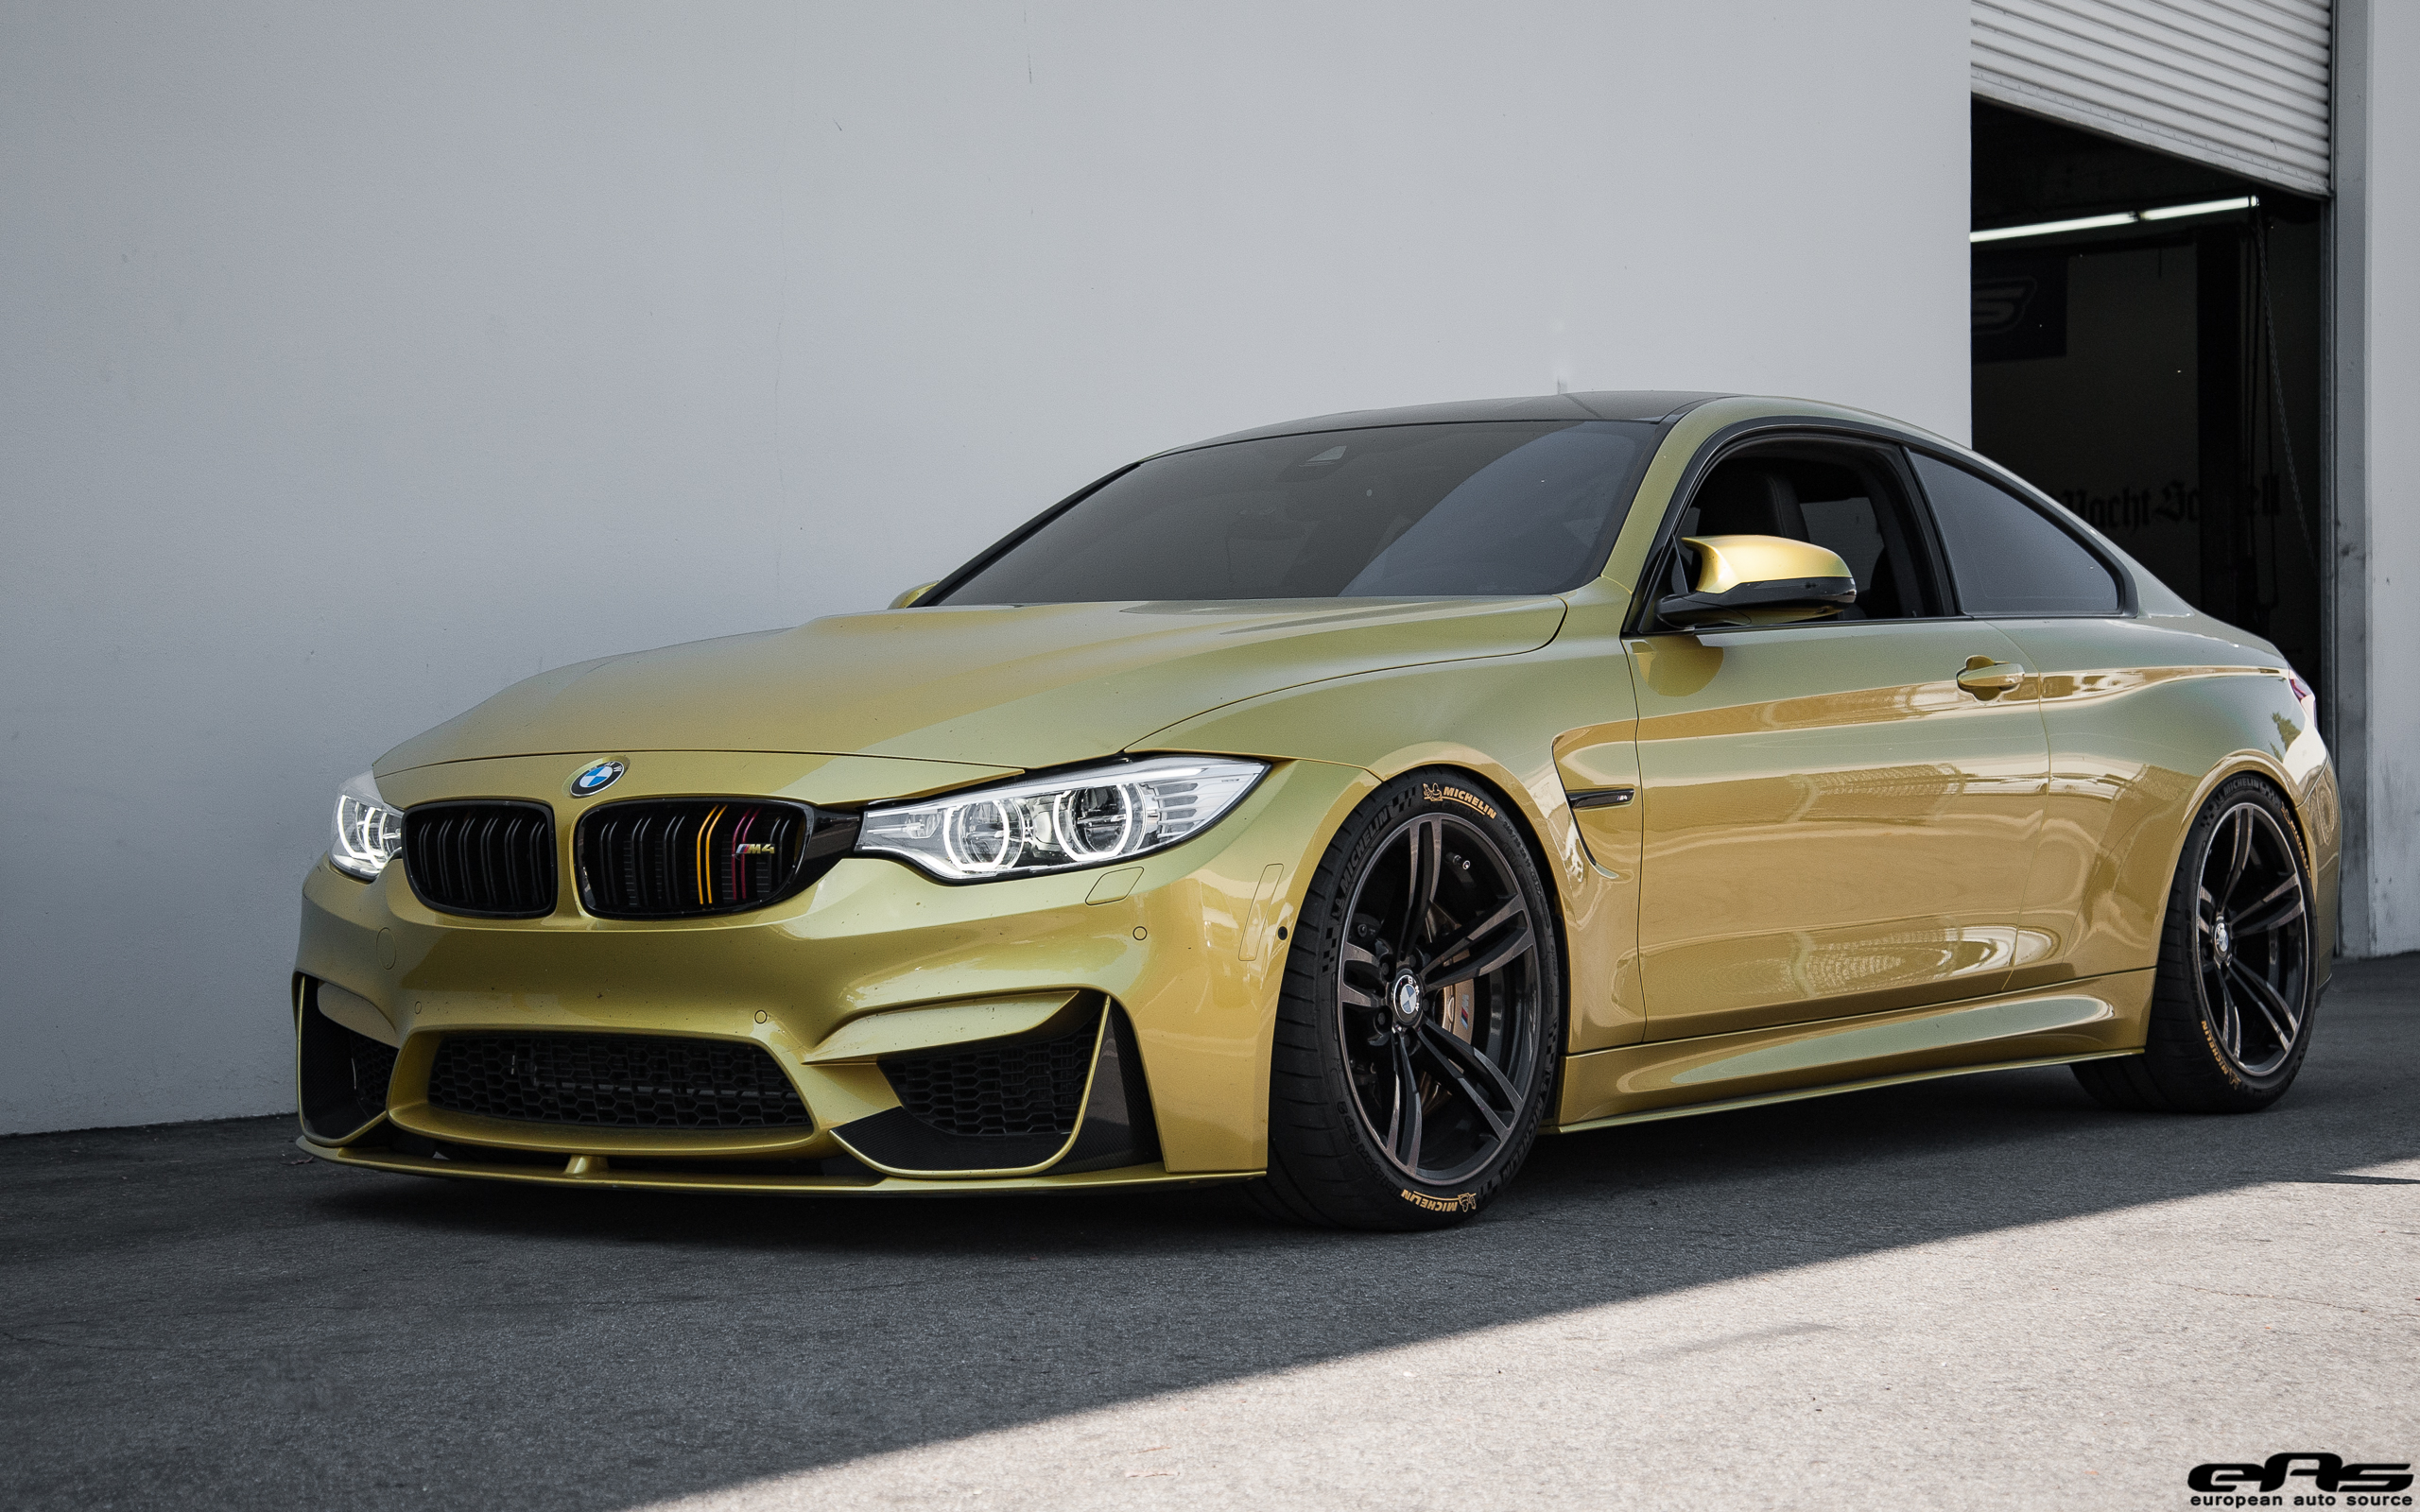 2017 Bmw 335i >> Austin Yellow BMW M4 Build With A Clean Aftermarket Look